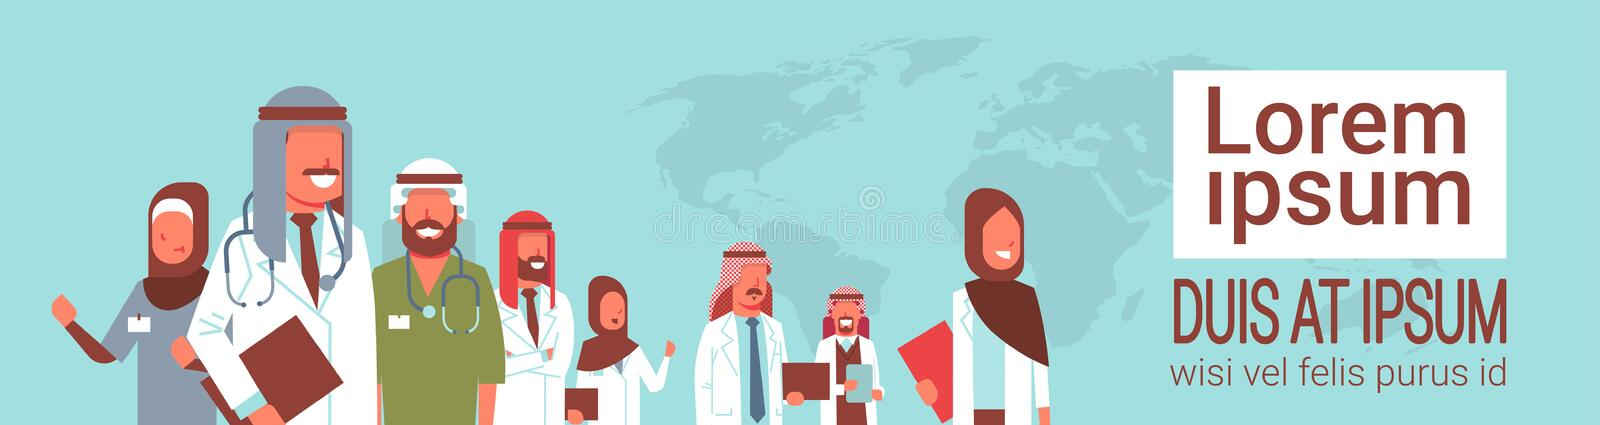 Group of arabic doctors team standing together meeting conference concept arab medical hospital workers over world map vector illustration